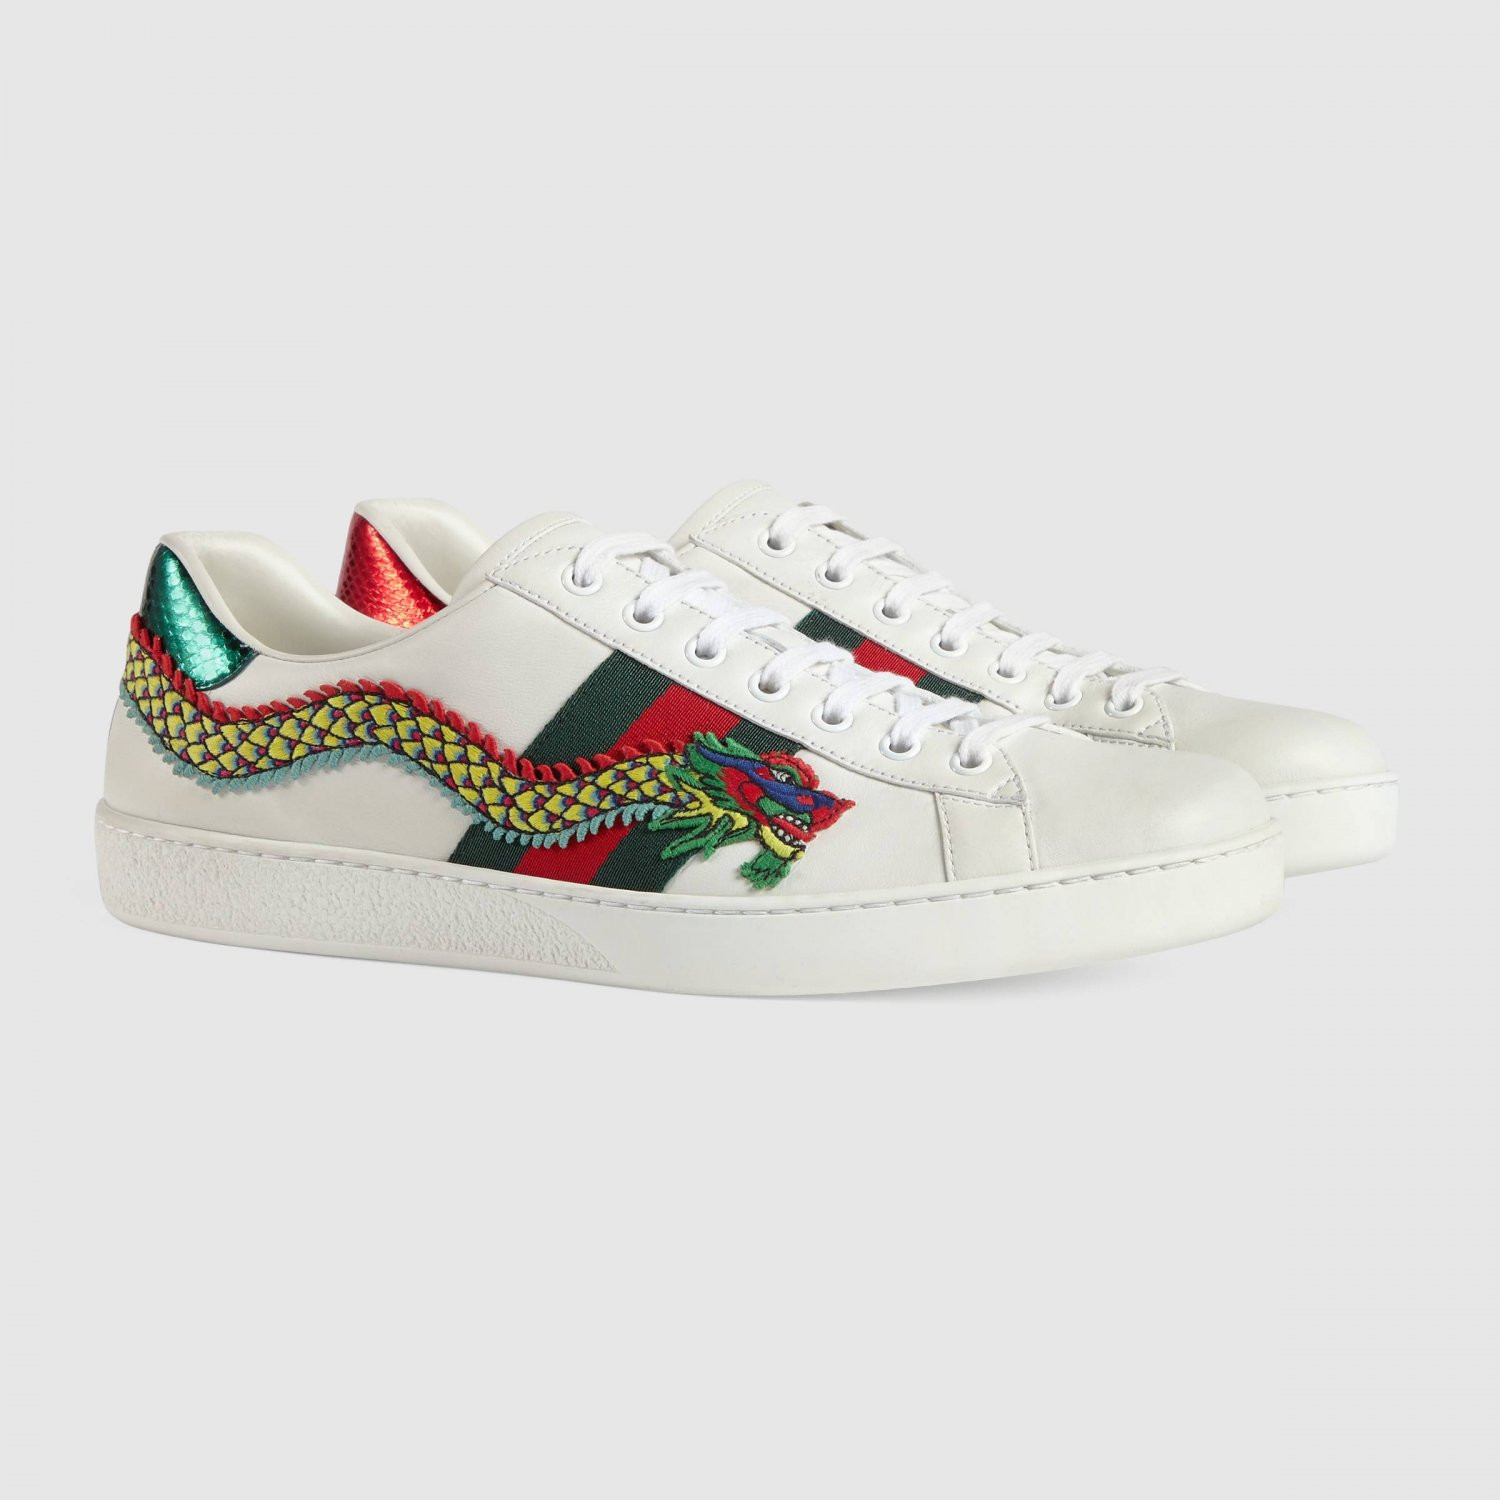 Gucci Ace White Red Green Dragon Embroidered Low Top Lace Up Flat Sneaker